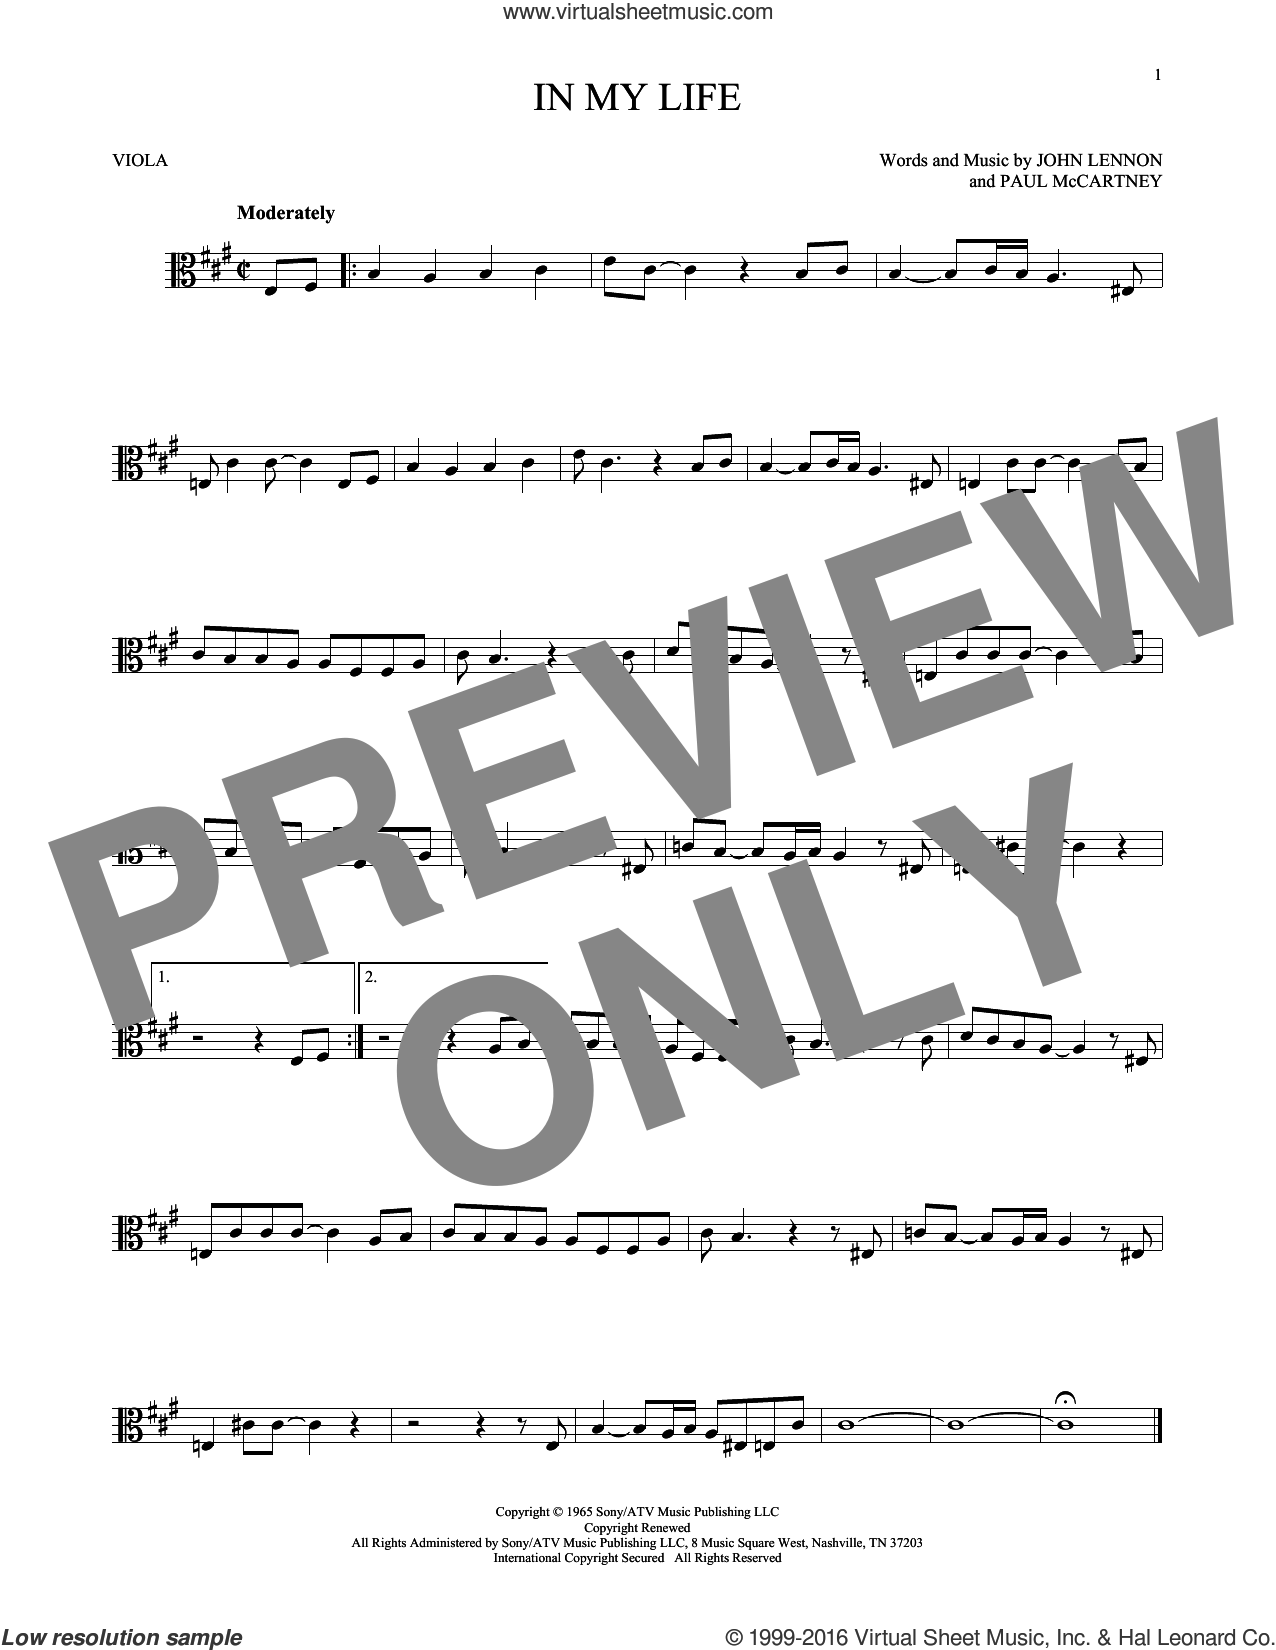 In My Life sheet music for viola solo by The Beatles, John Lennon and Paul McCartney, intermediate skill level